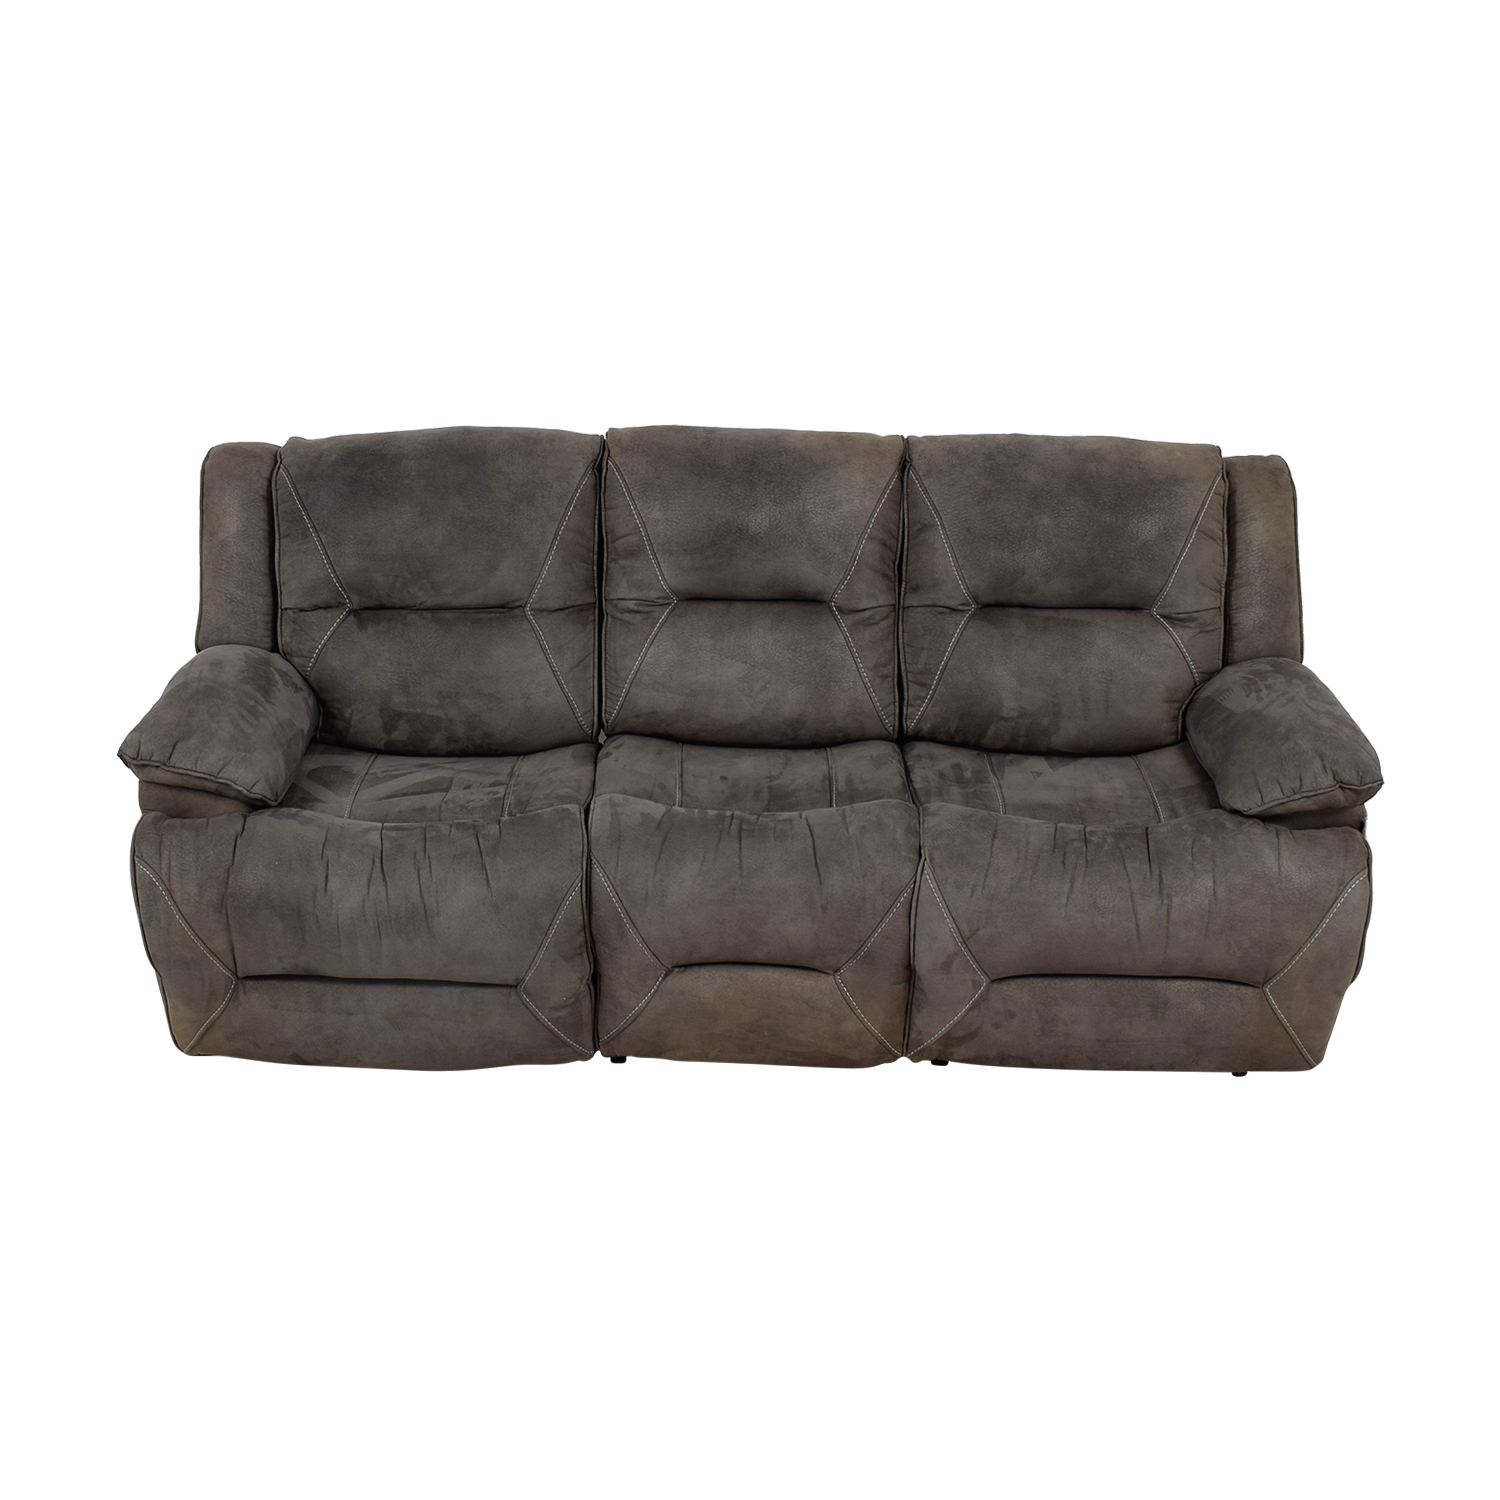 Raymour & Flanigan Raymour & Flanigan Grey Reclining Sofa on sale